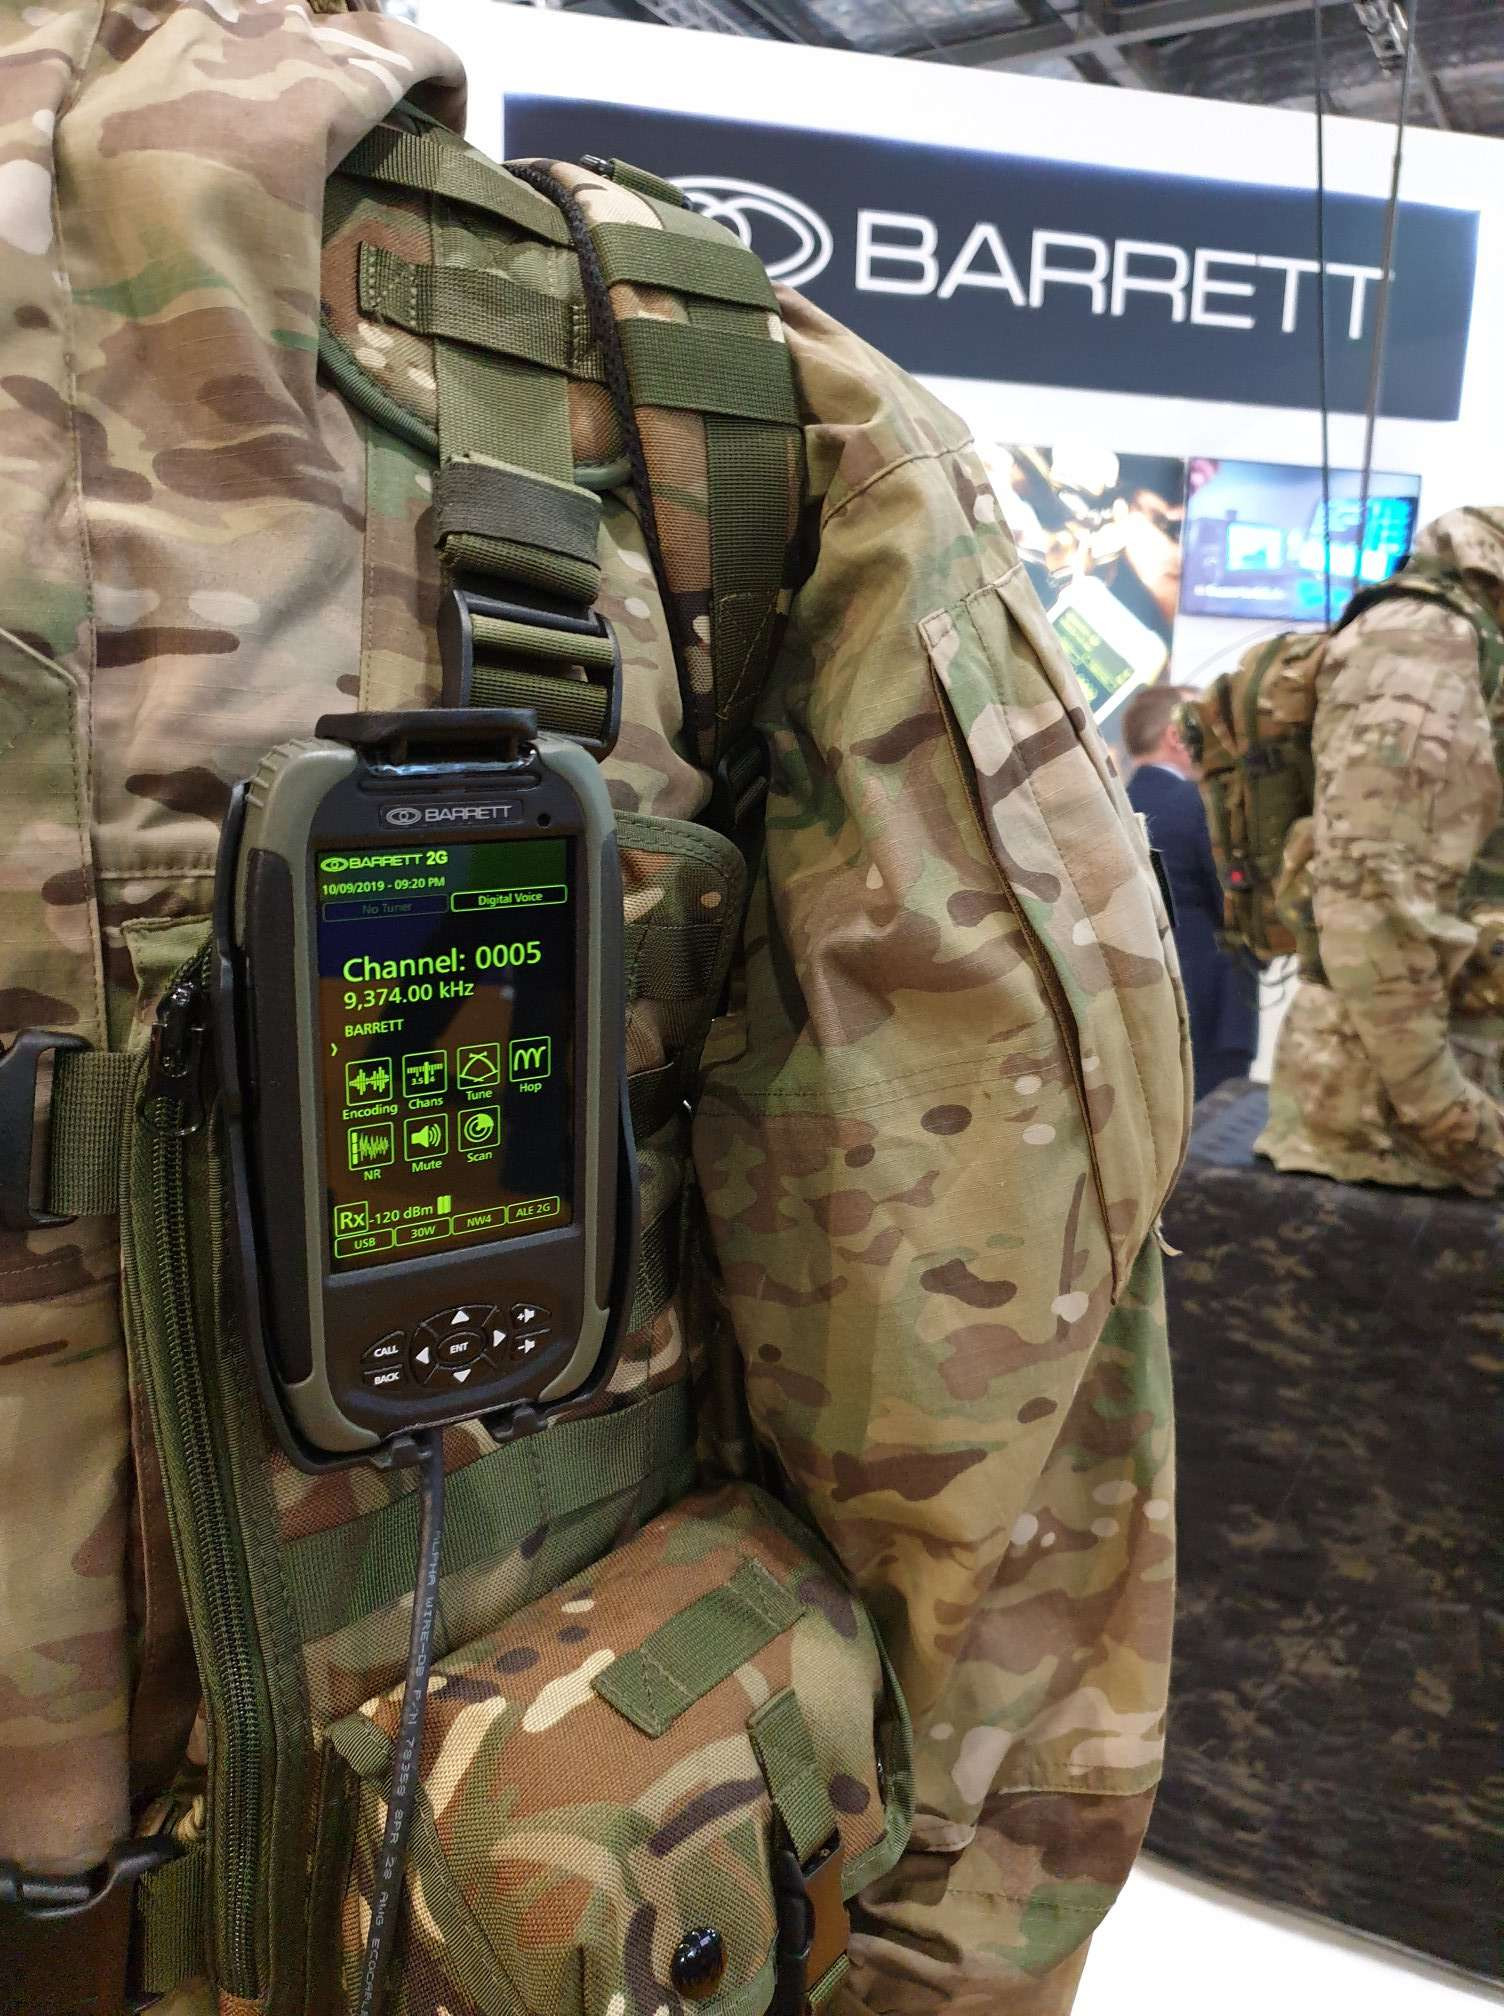 Barrett Communications DSEI 2019 Image 2